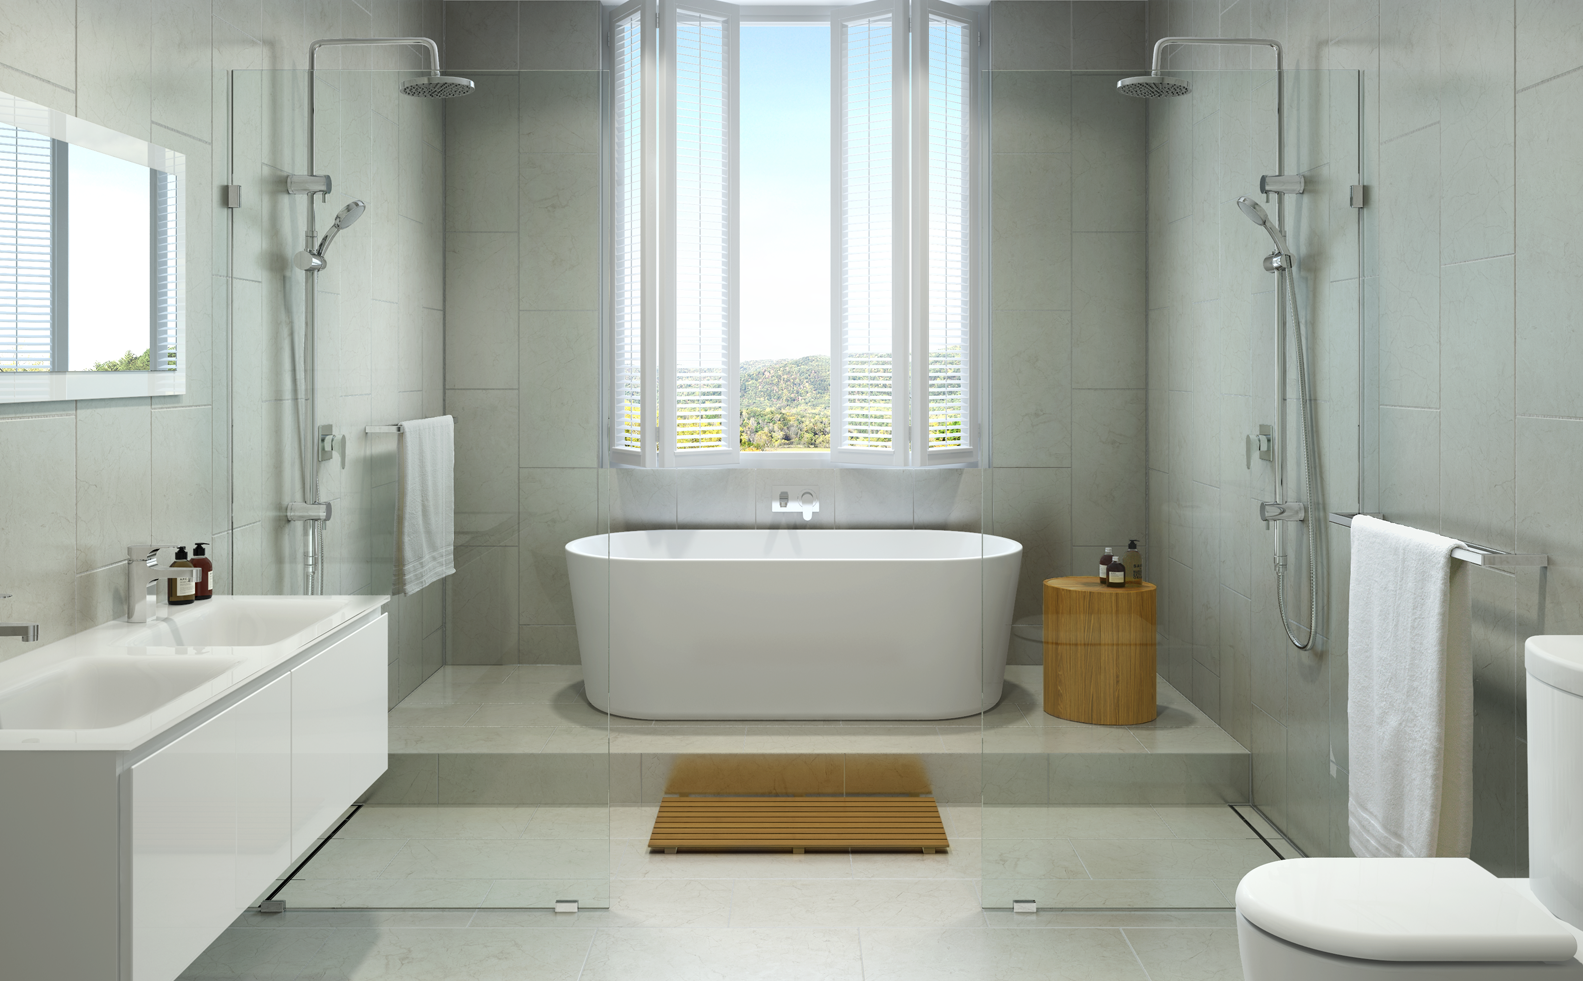 The bath freestanding vs built in for Built in tub dimensions